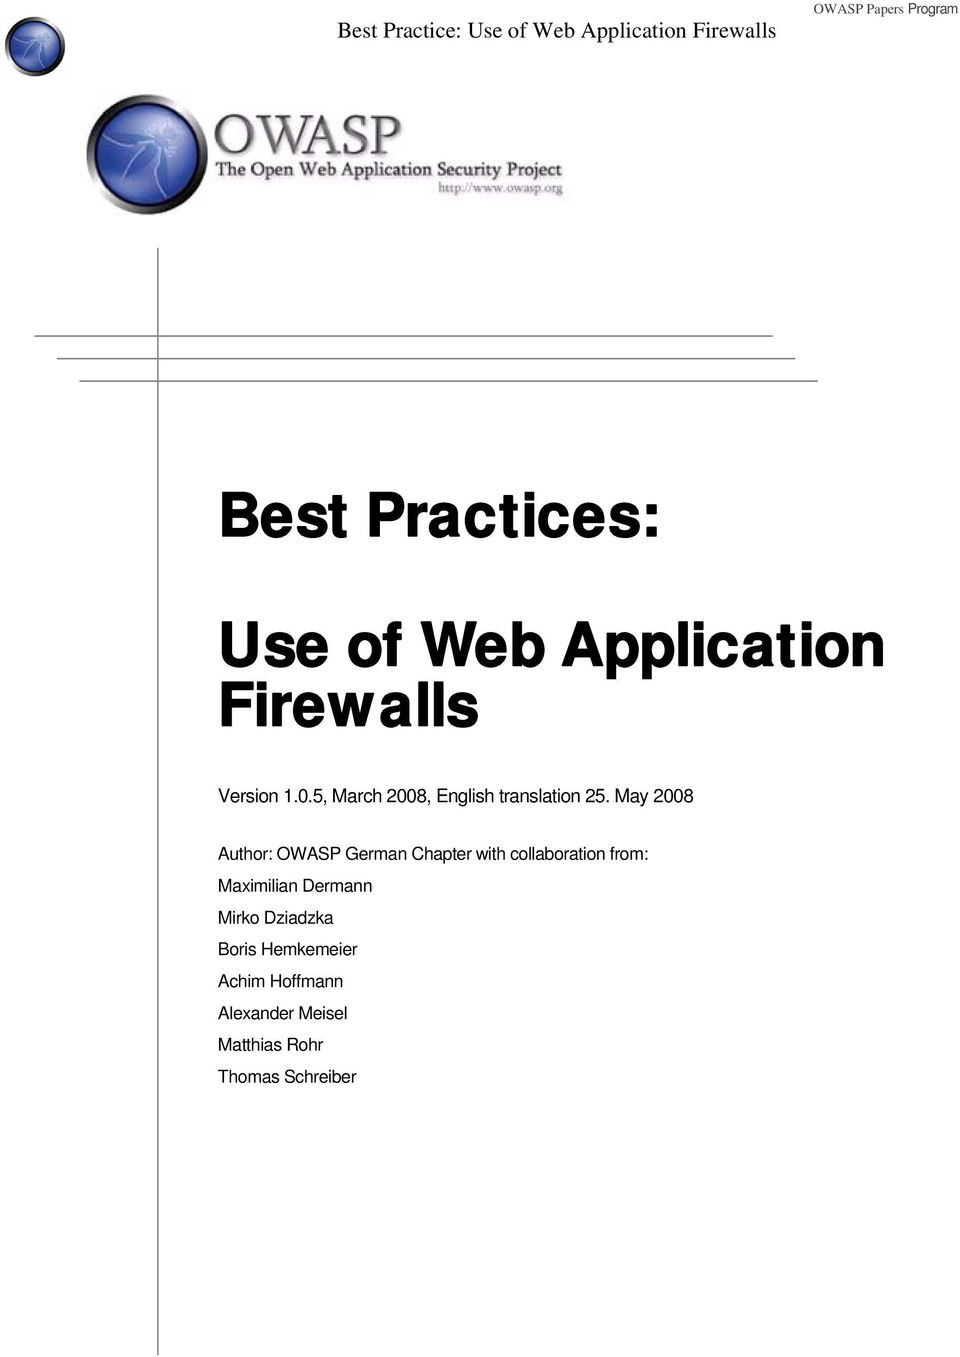 May 2008 Author: OWASP German Chapter with collaboration from: